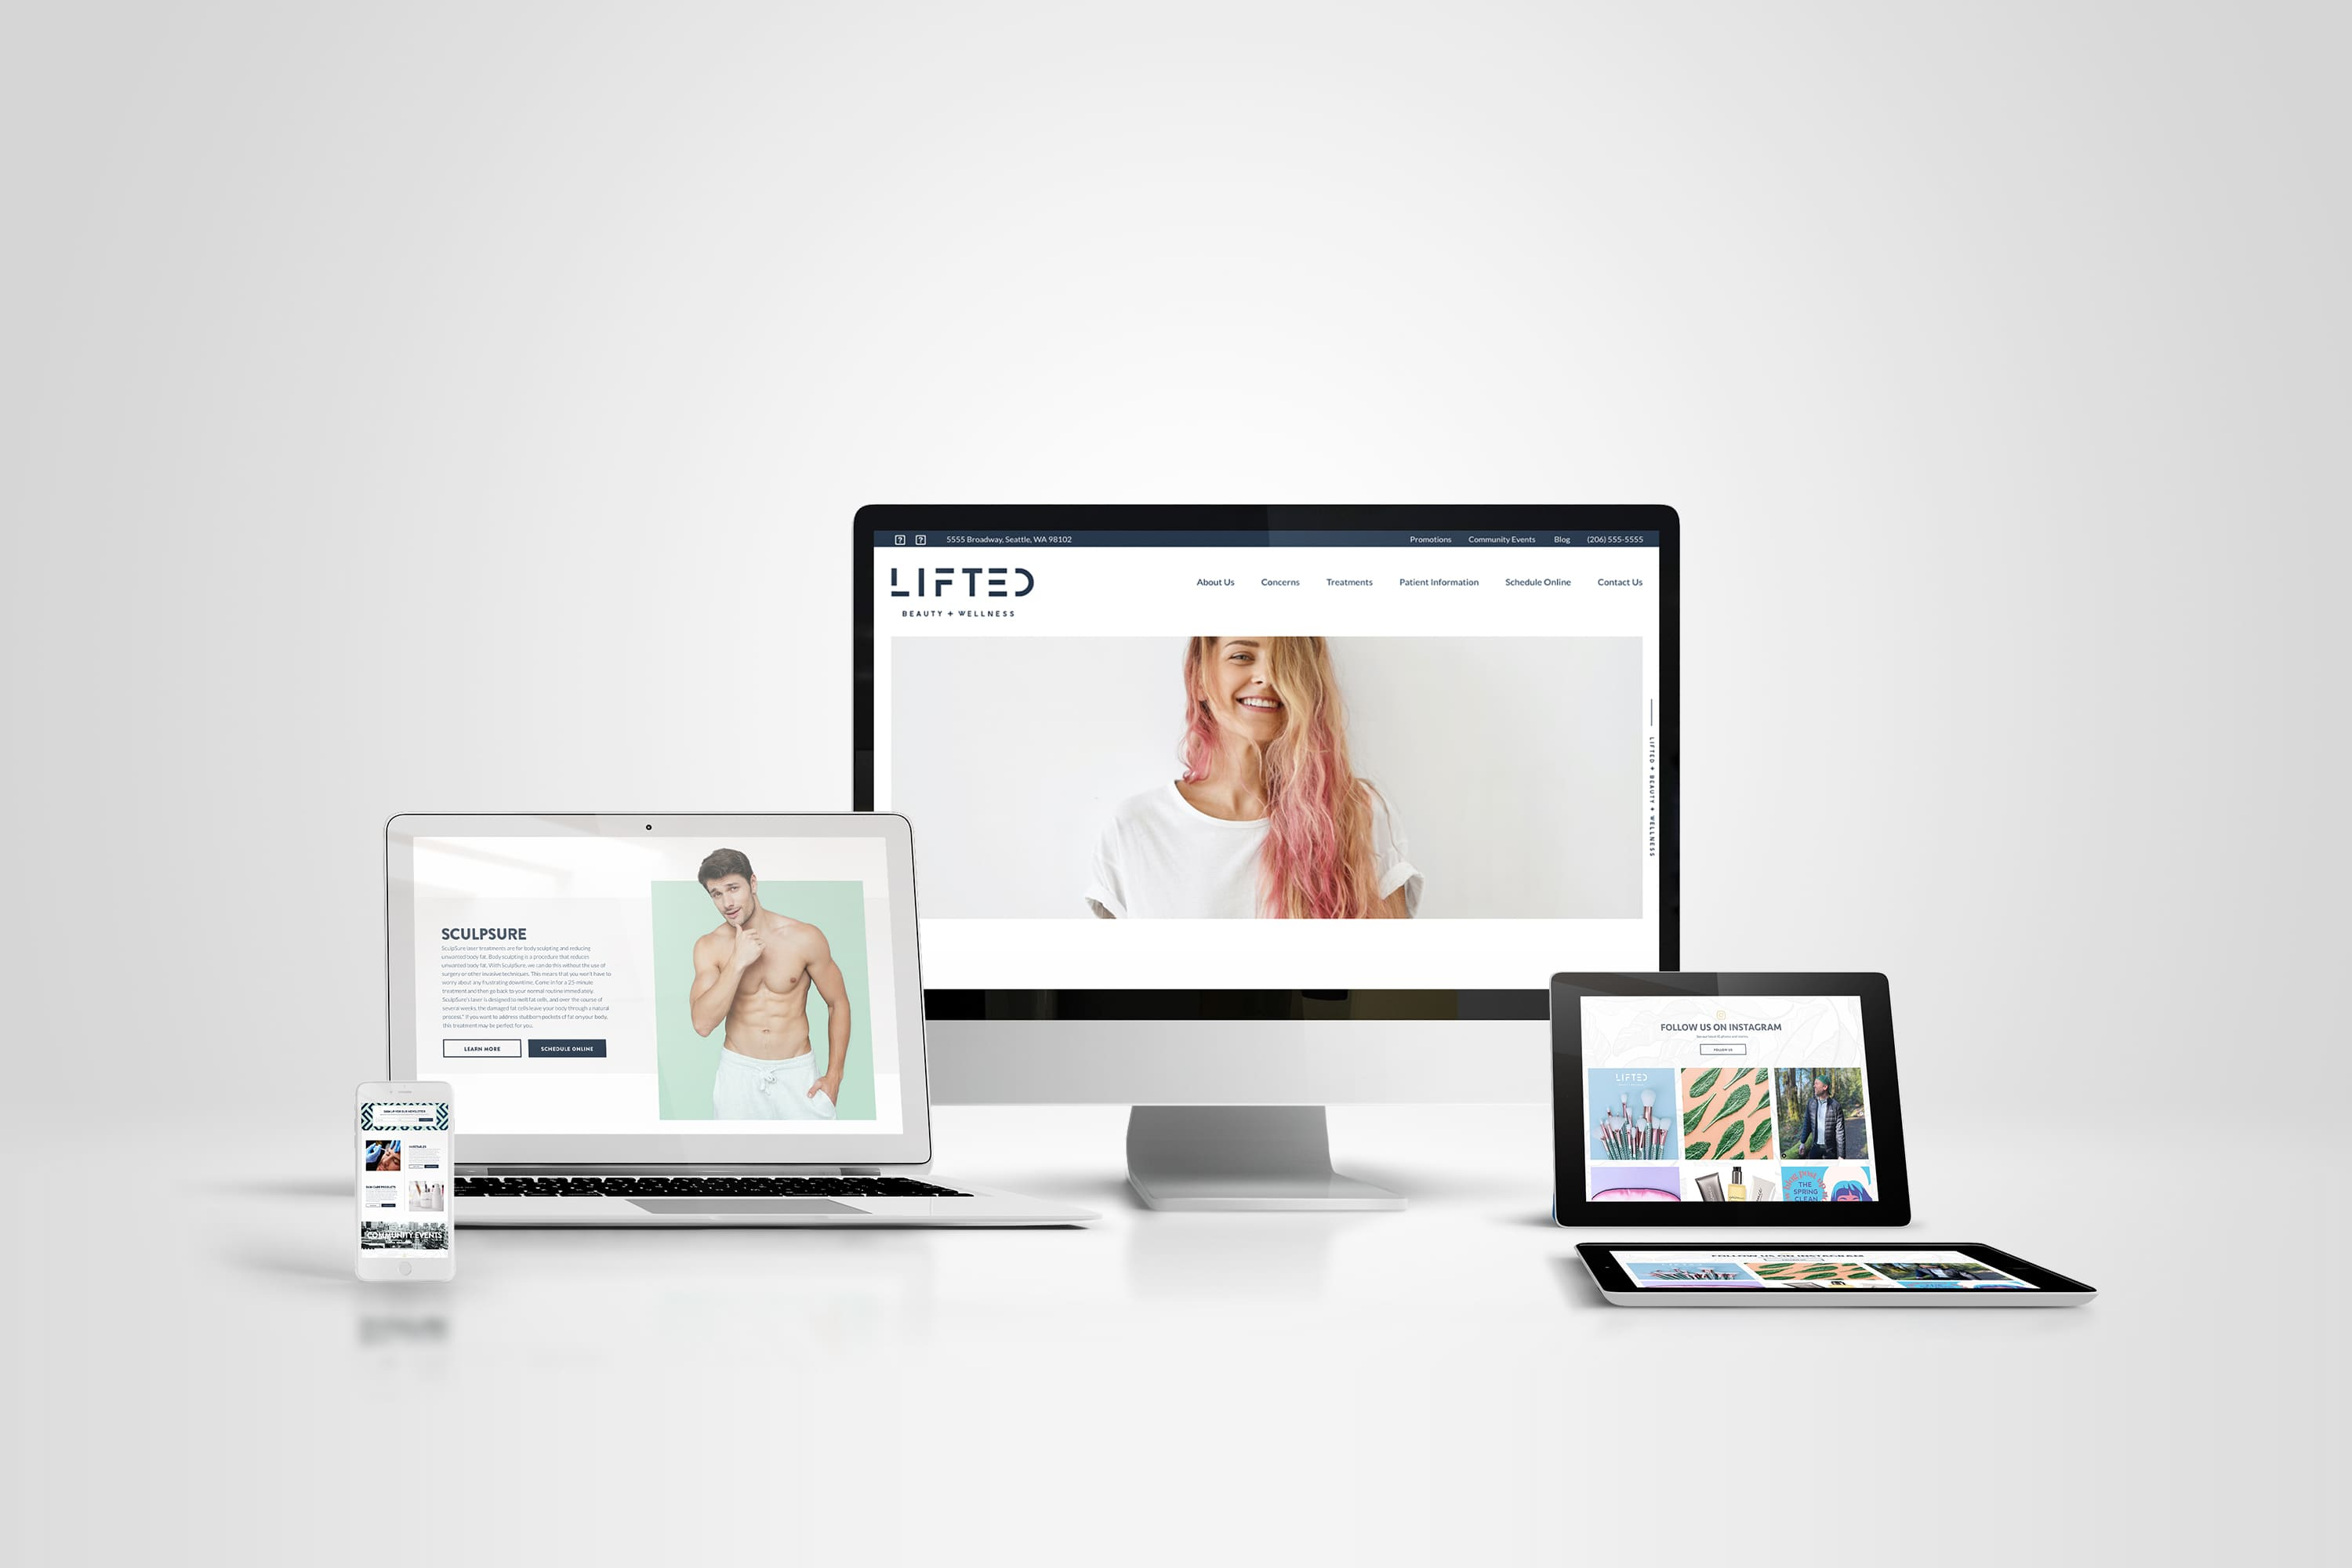 lifted-website